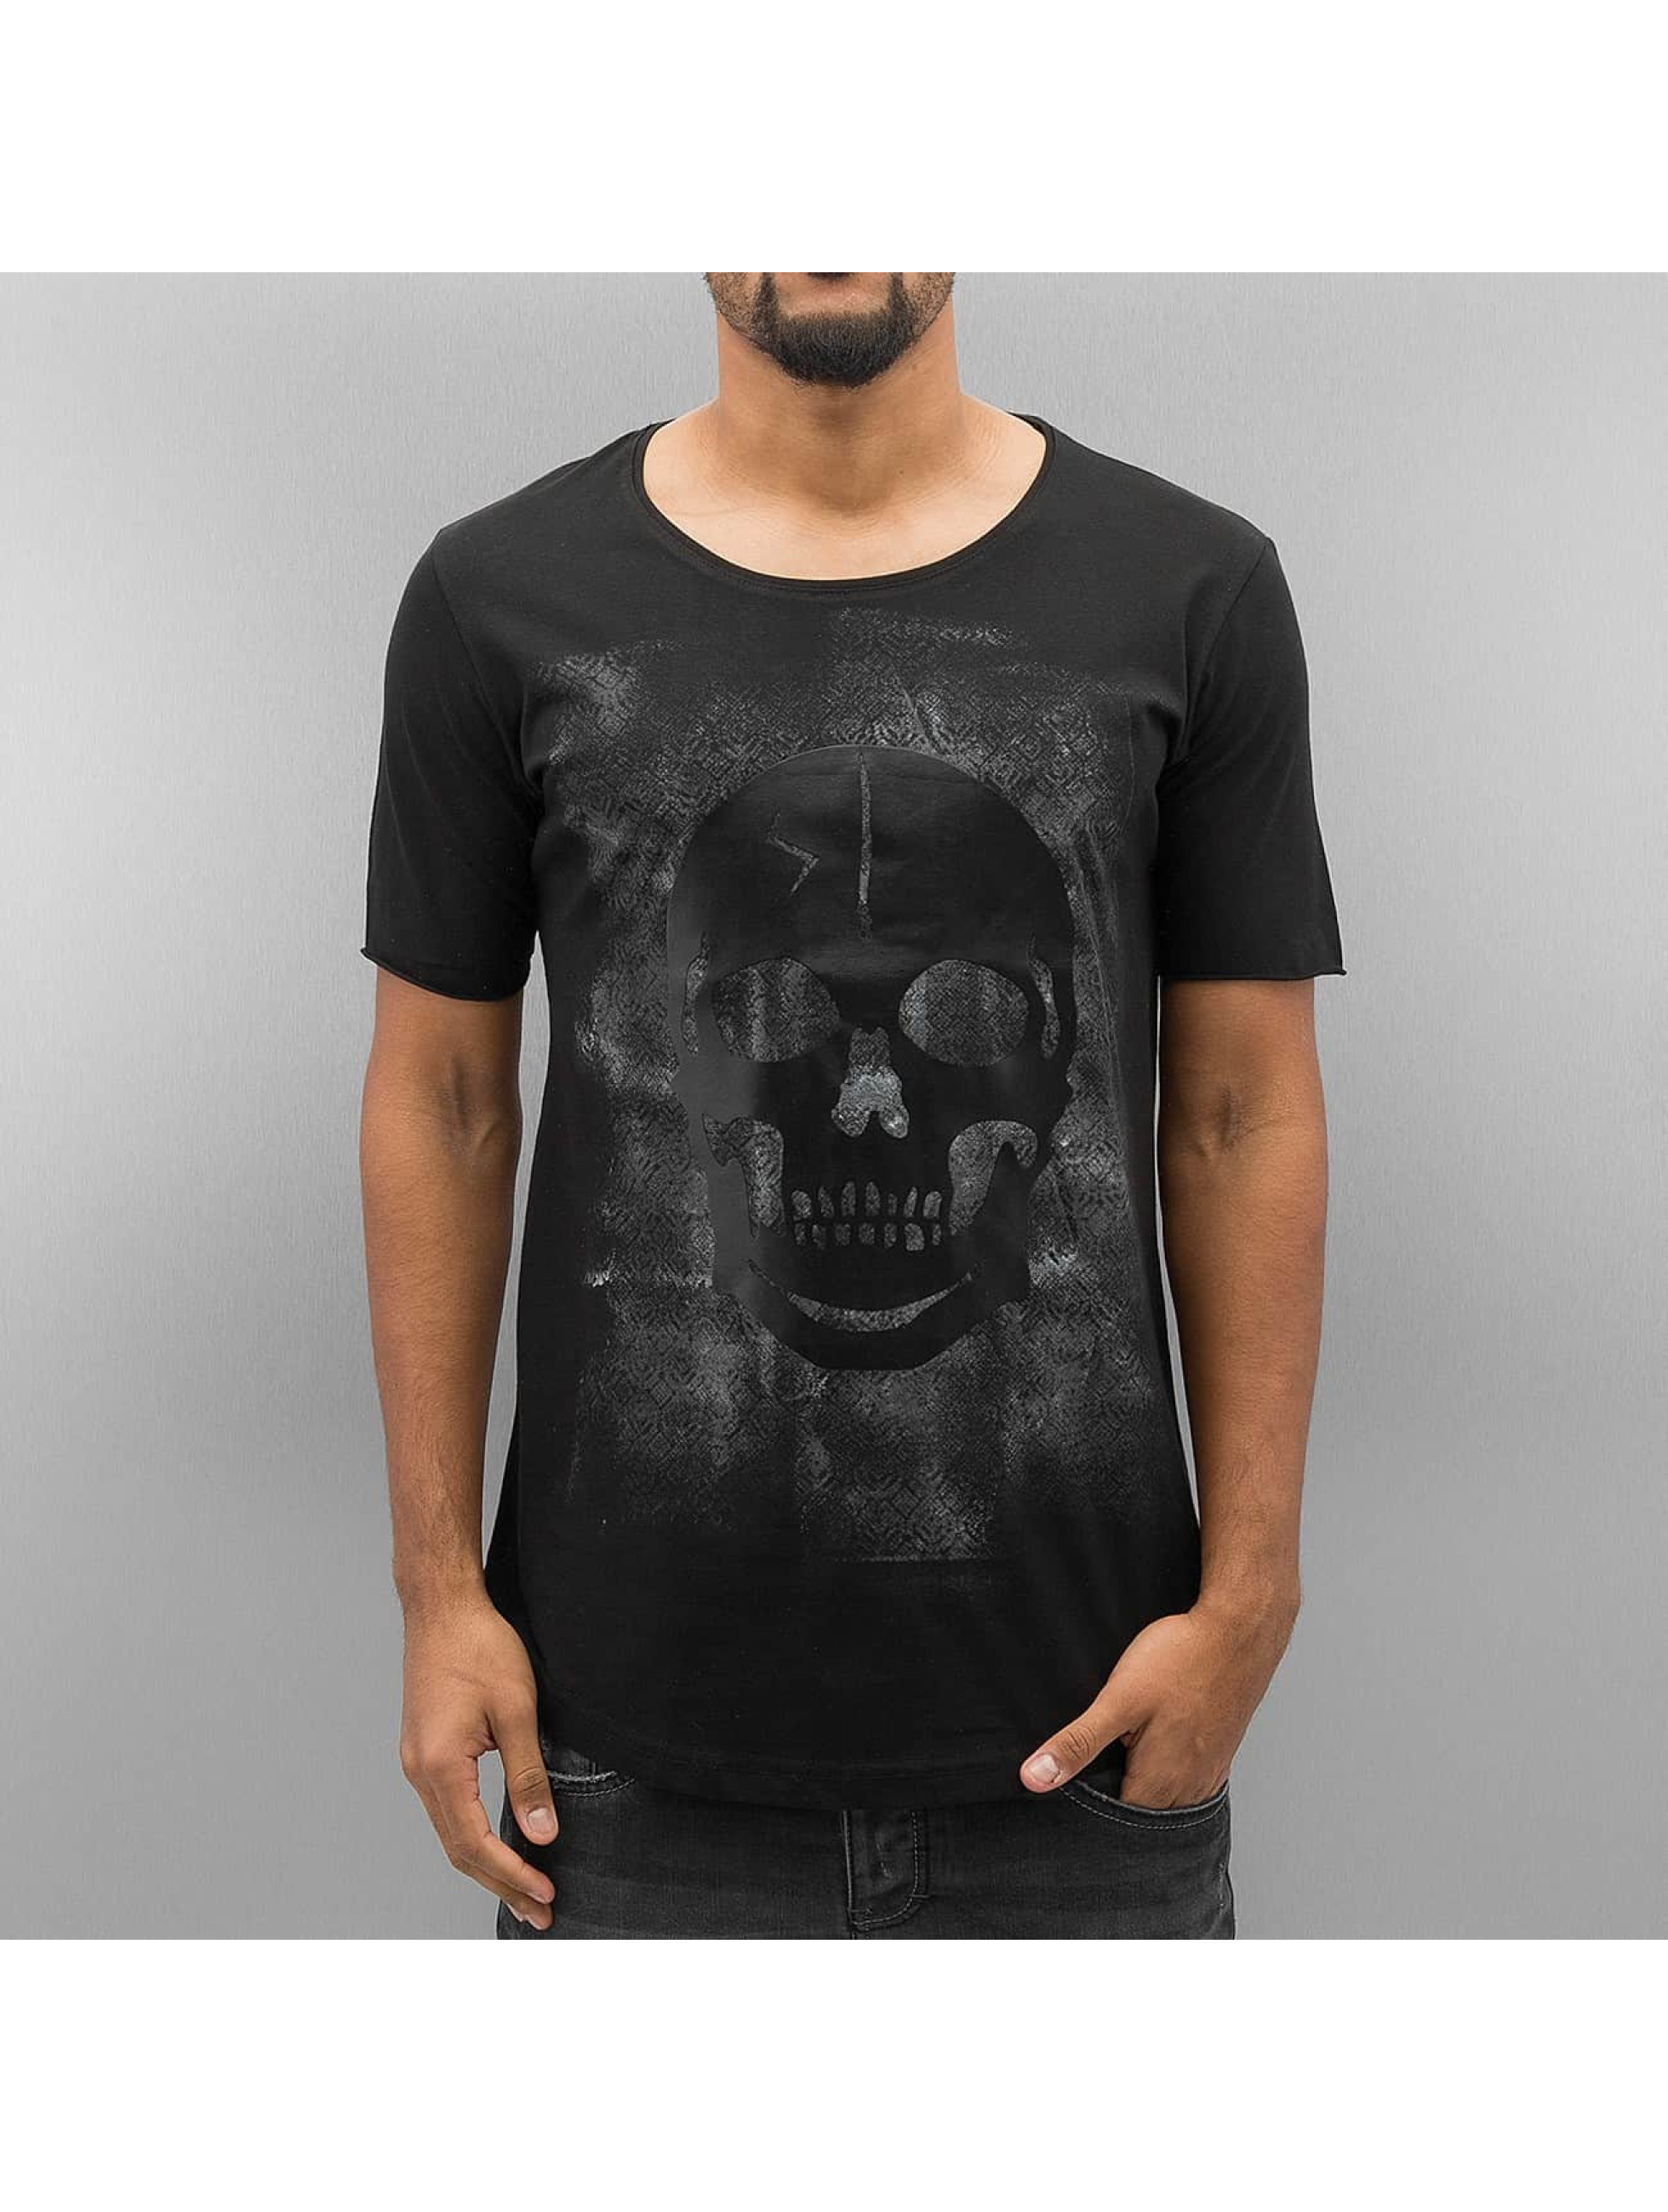 2Y / T-Shirt Skull in black S